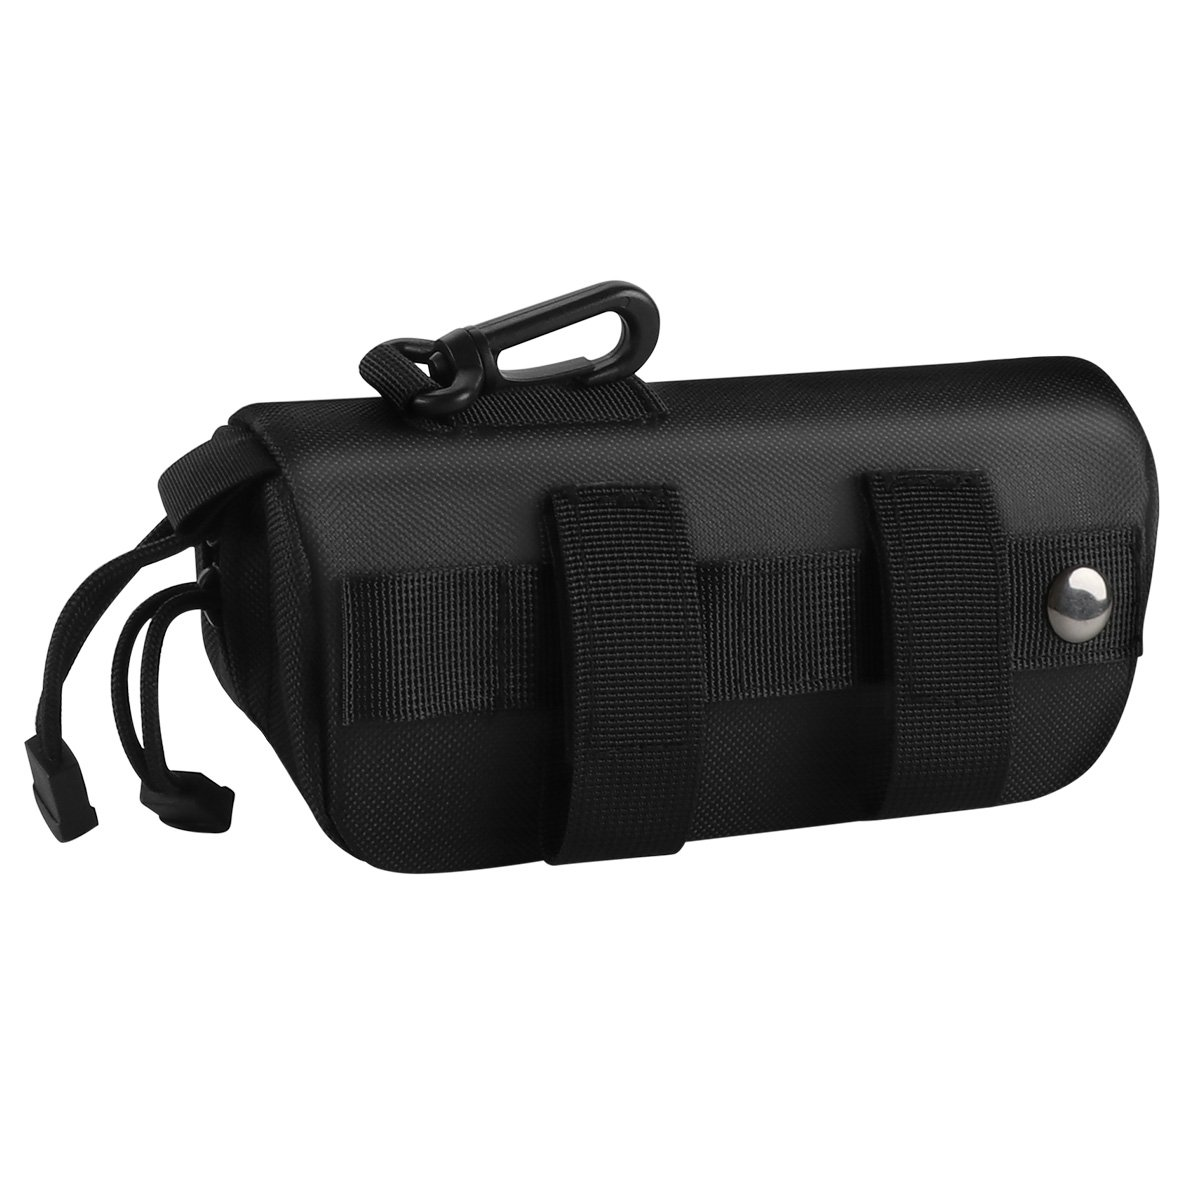 xhorizon SR Tactical Molle Sunglasses Case Outdoor Portable Shockproof 1000D Nylon Hard Clamshell Carrying Glasses Case by xhorizon